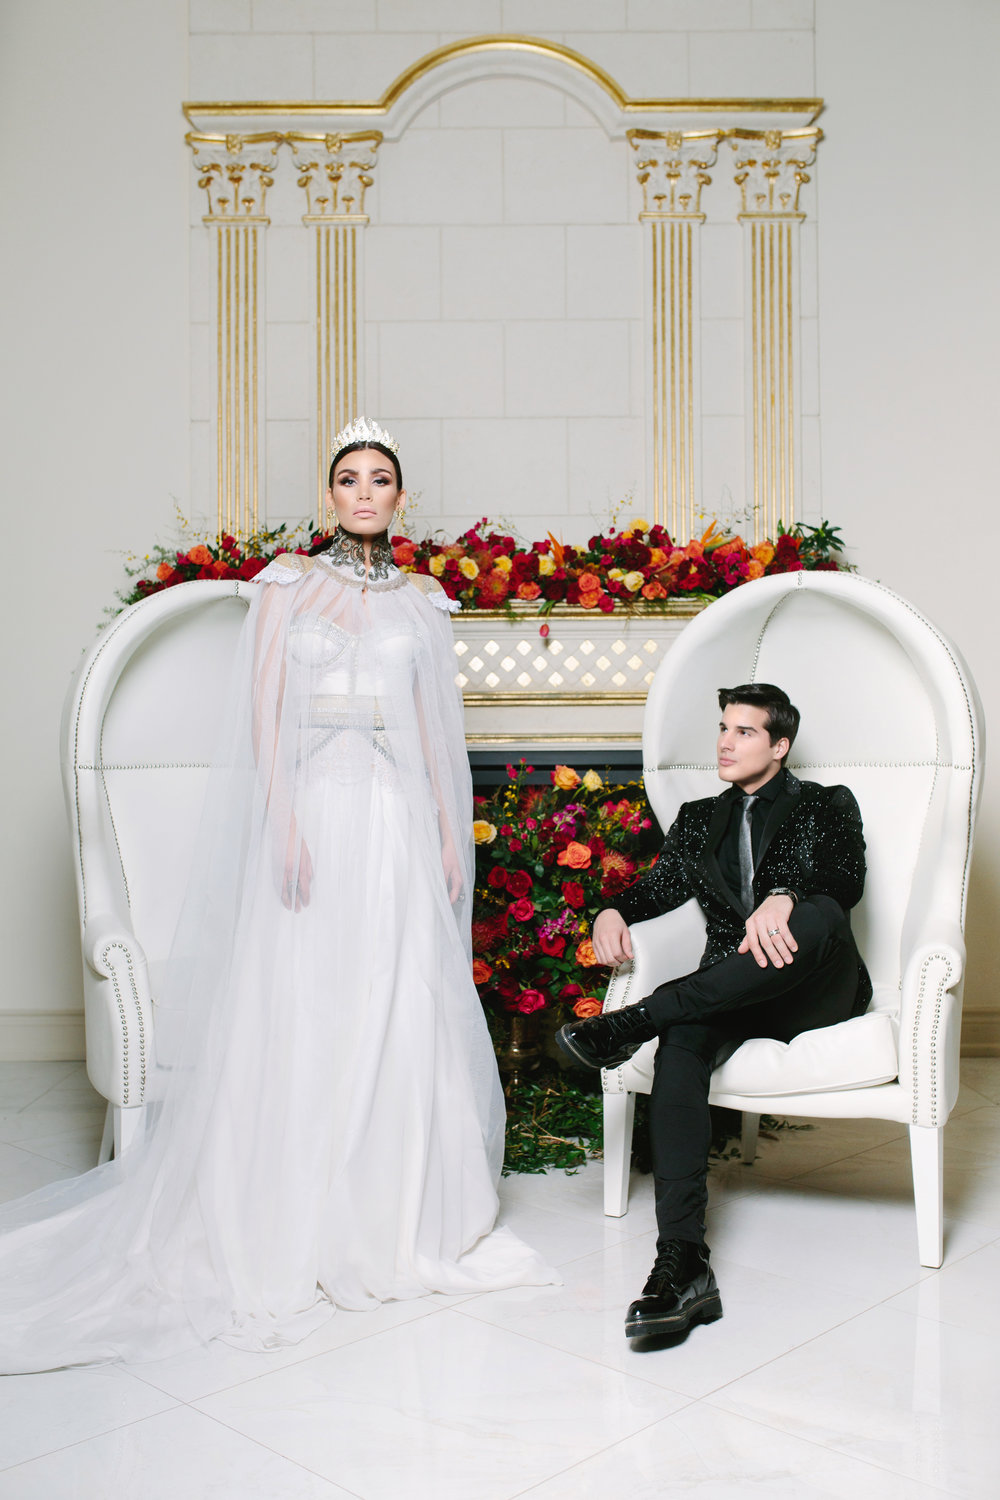 August In Bloom - Couple at Wedding Ceremony - Love Balmain